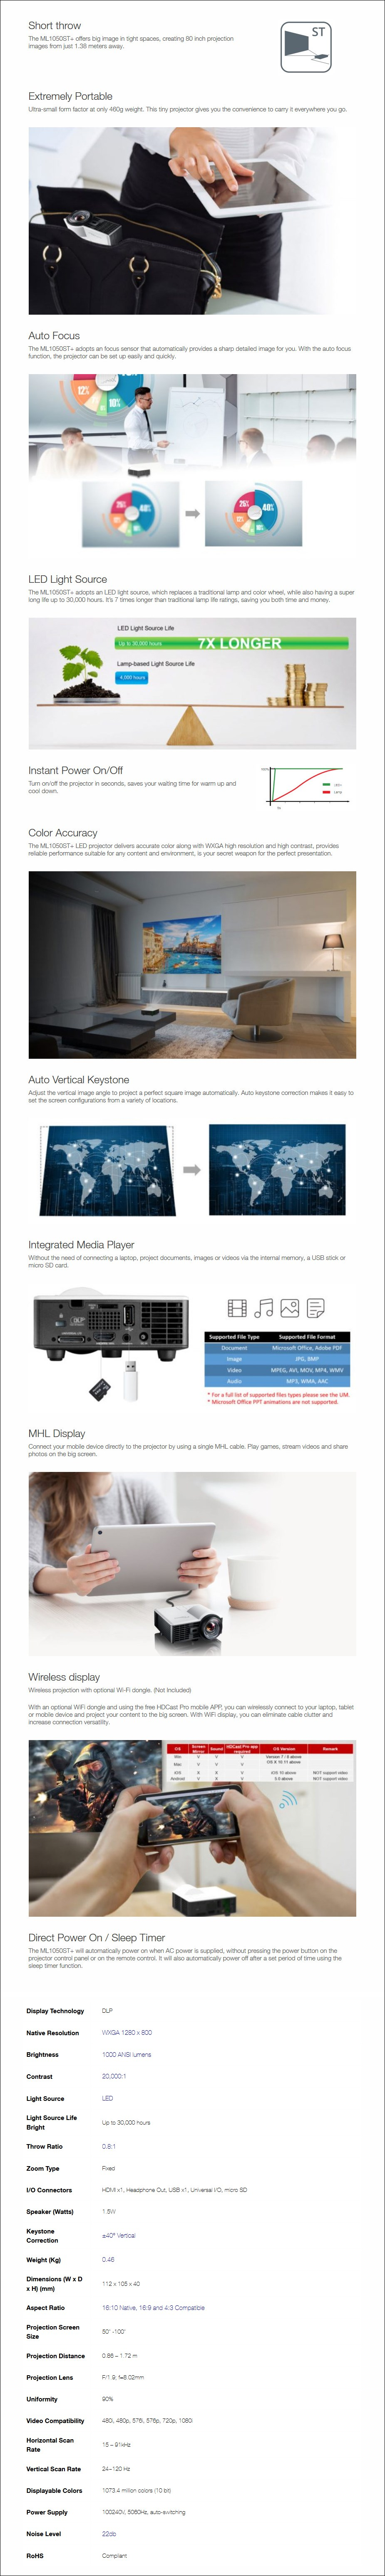 Optoma ML1050ST+ WXGA 1000 Lumens Short Throw Compact LED Projector - Overview 1